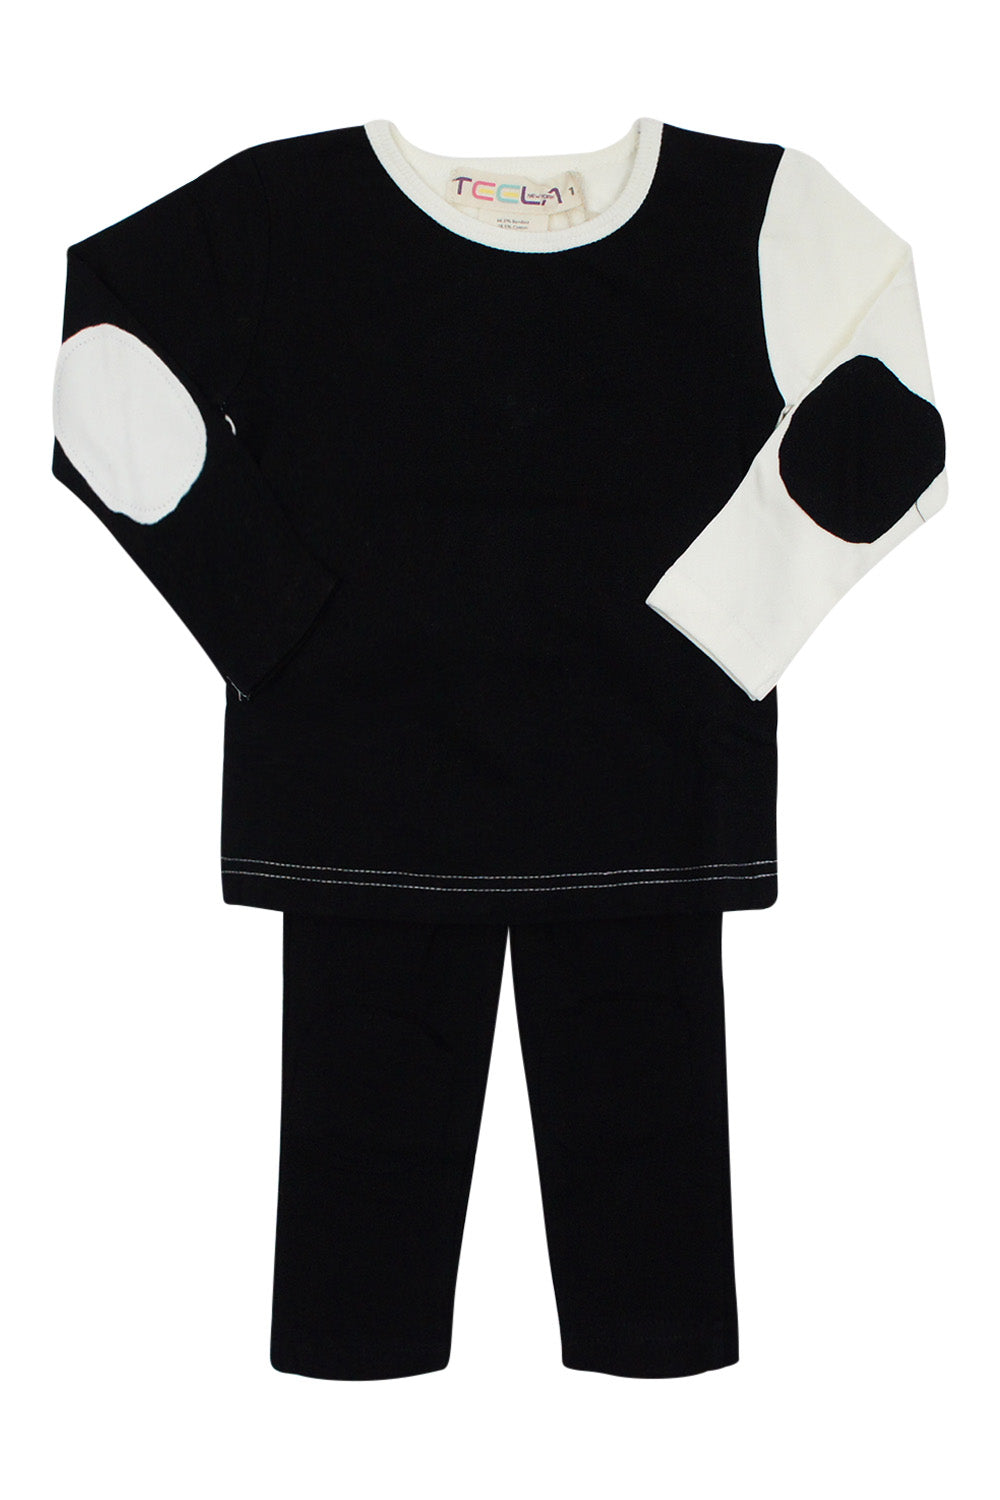 Teela Black Color Block Loungewear Set